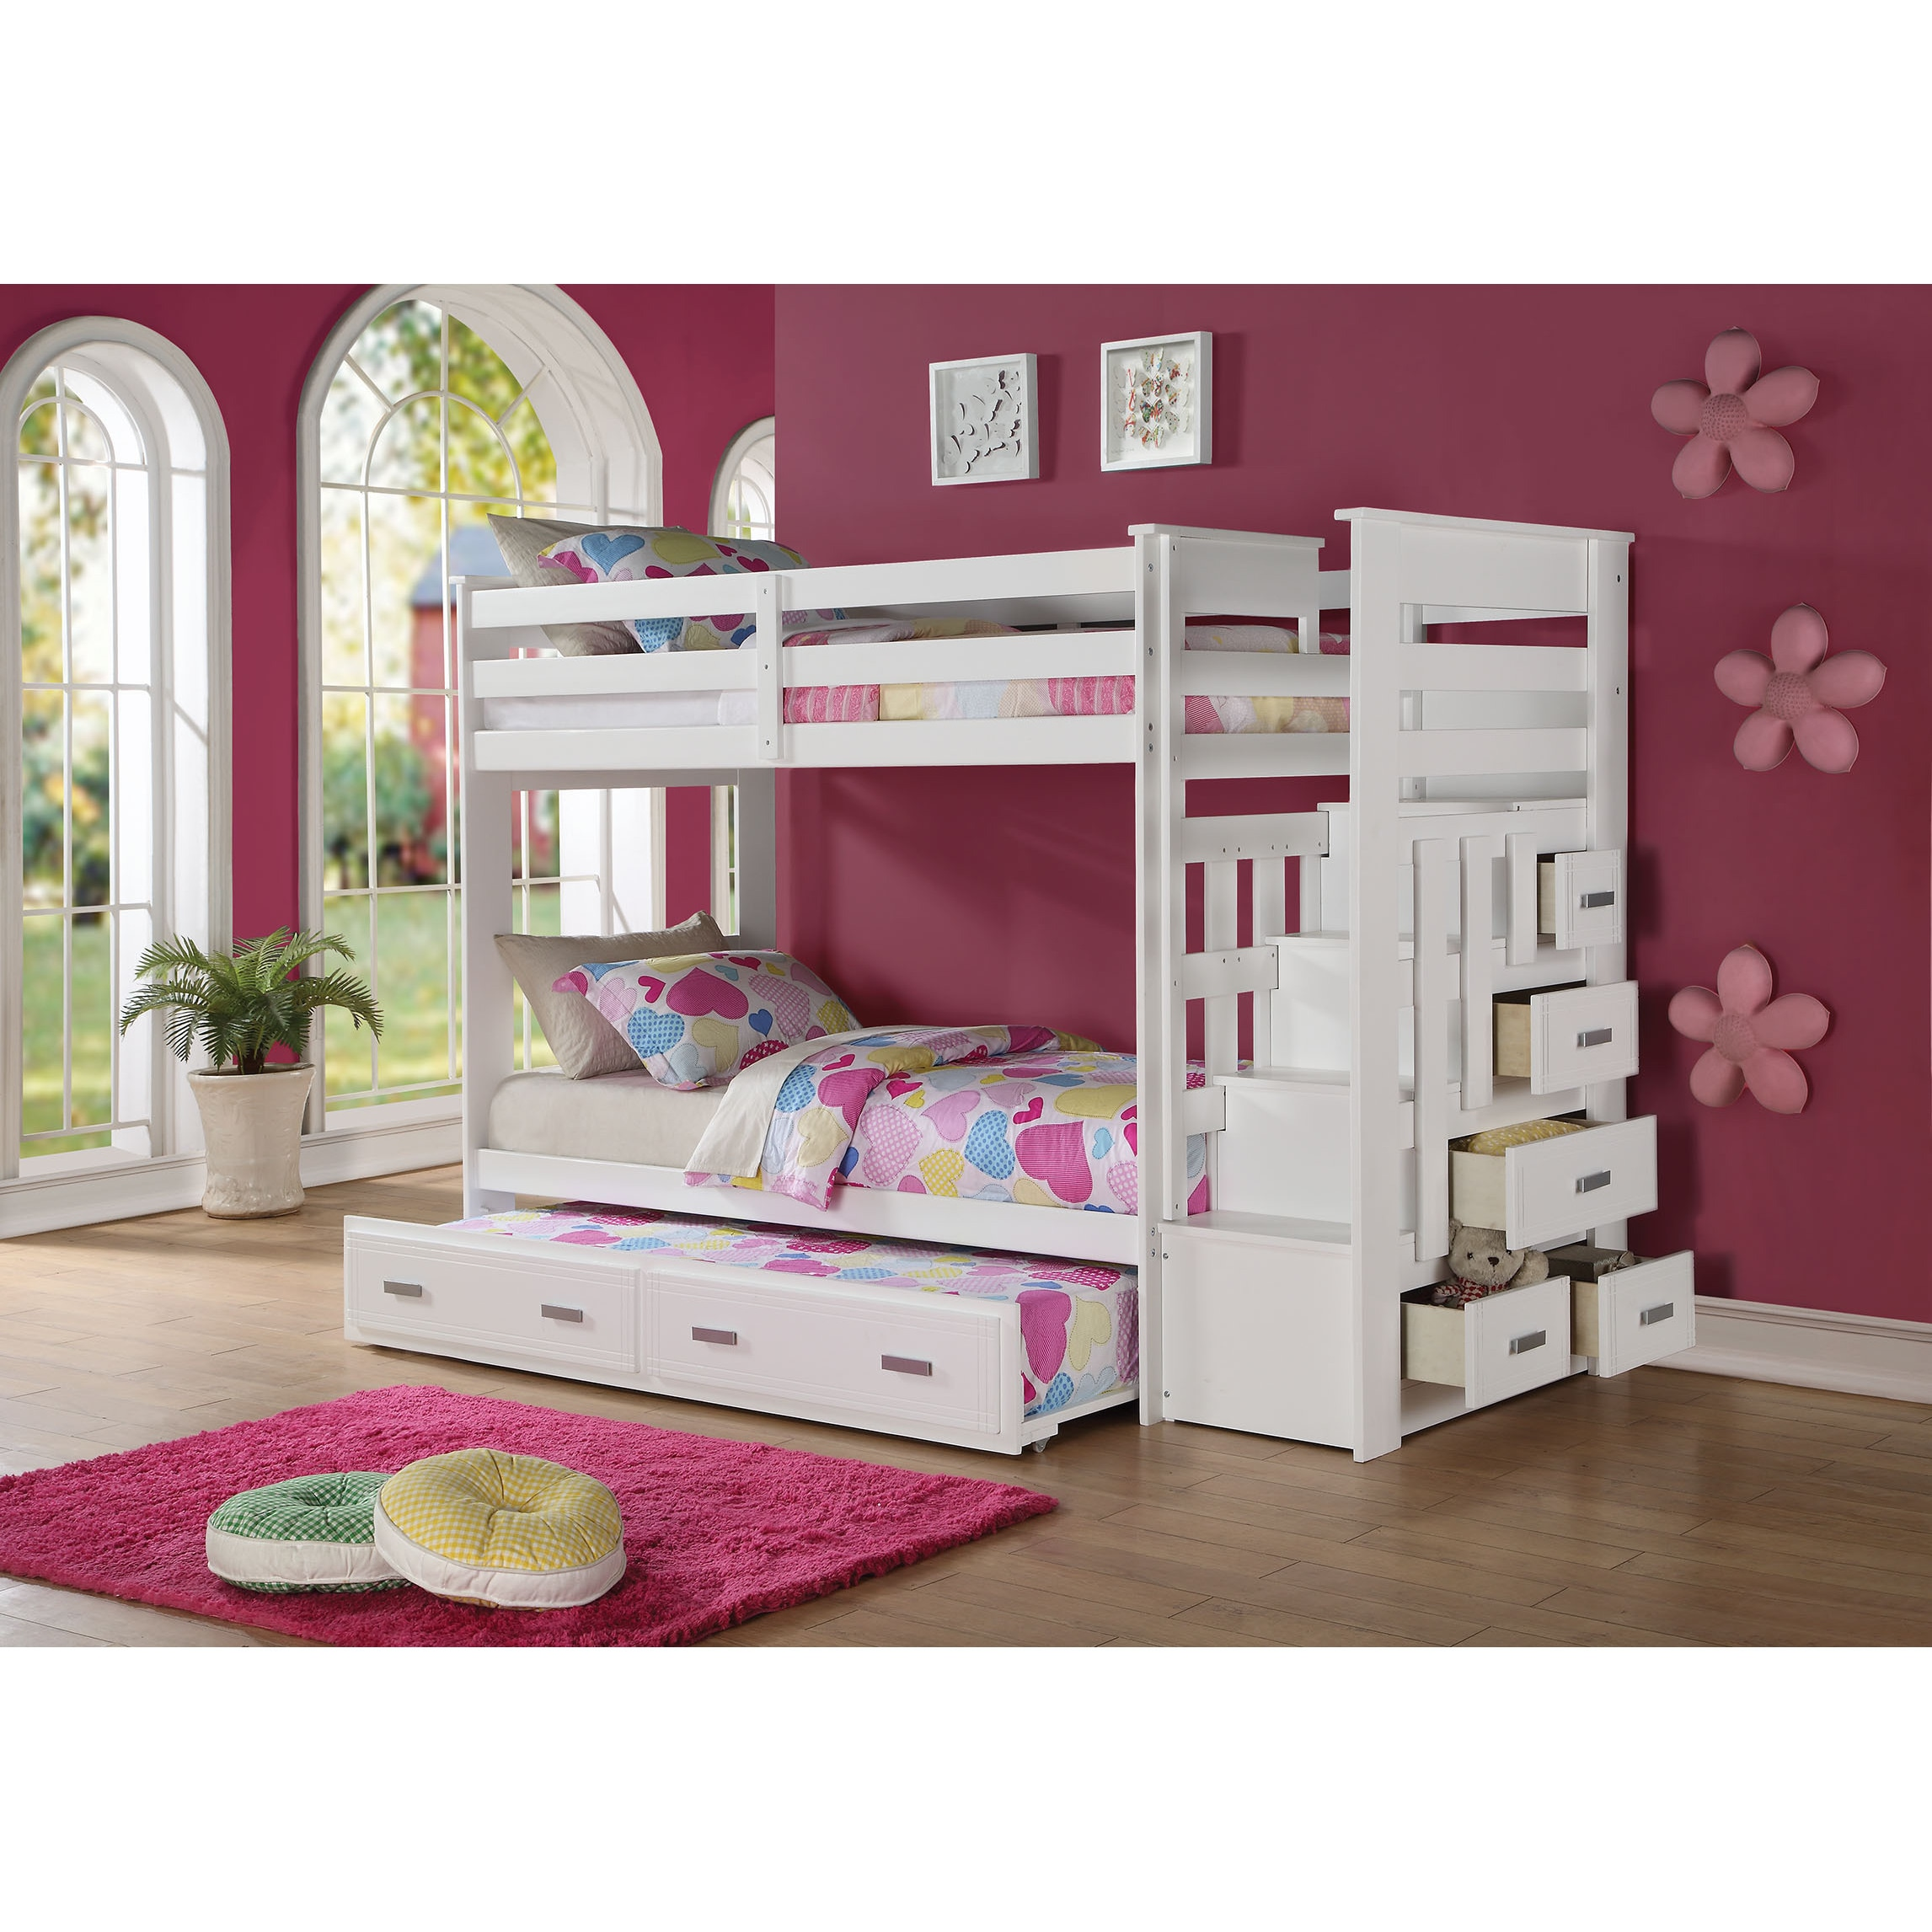 Shop Allentown White Pinewood Twin over twin Bunk Bed With Storage